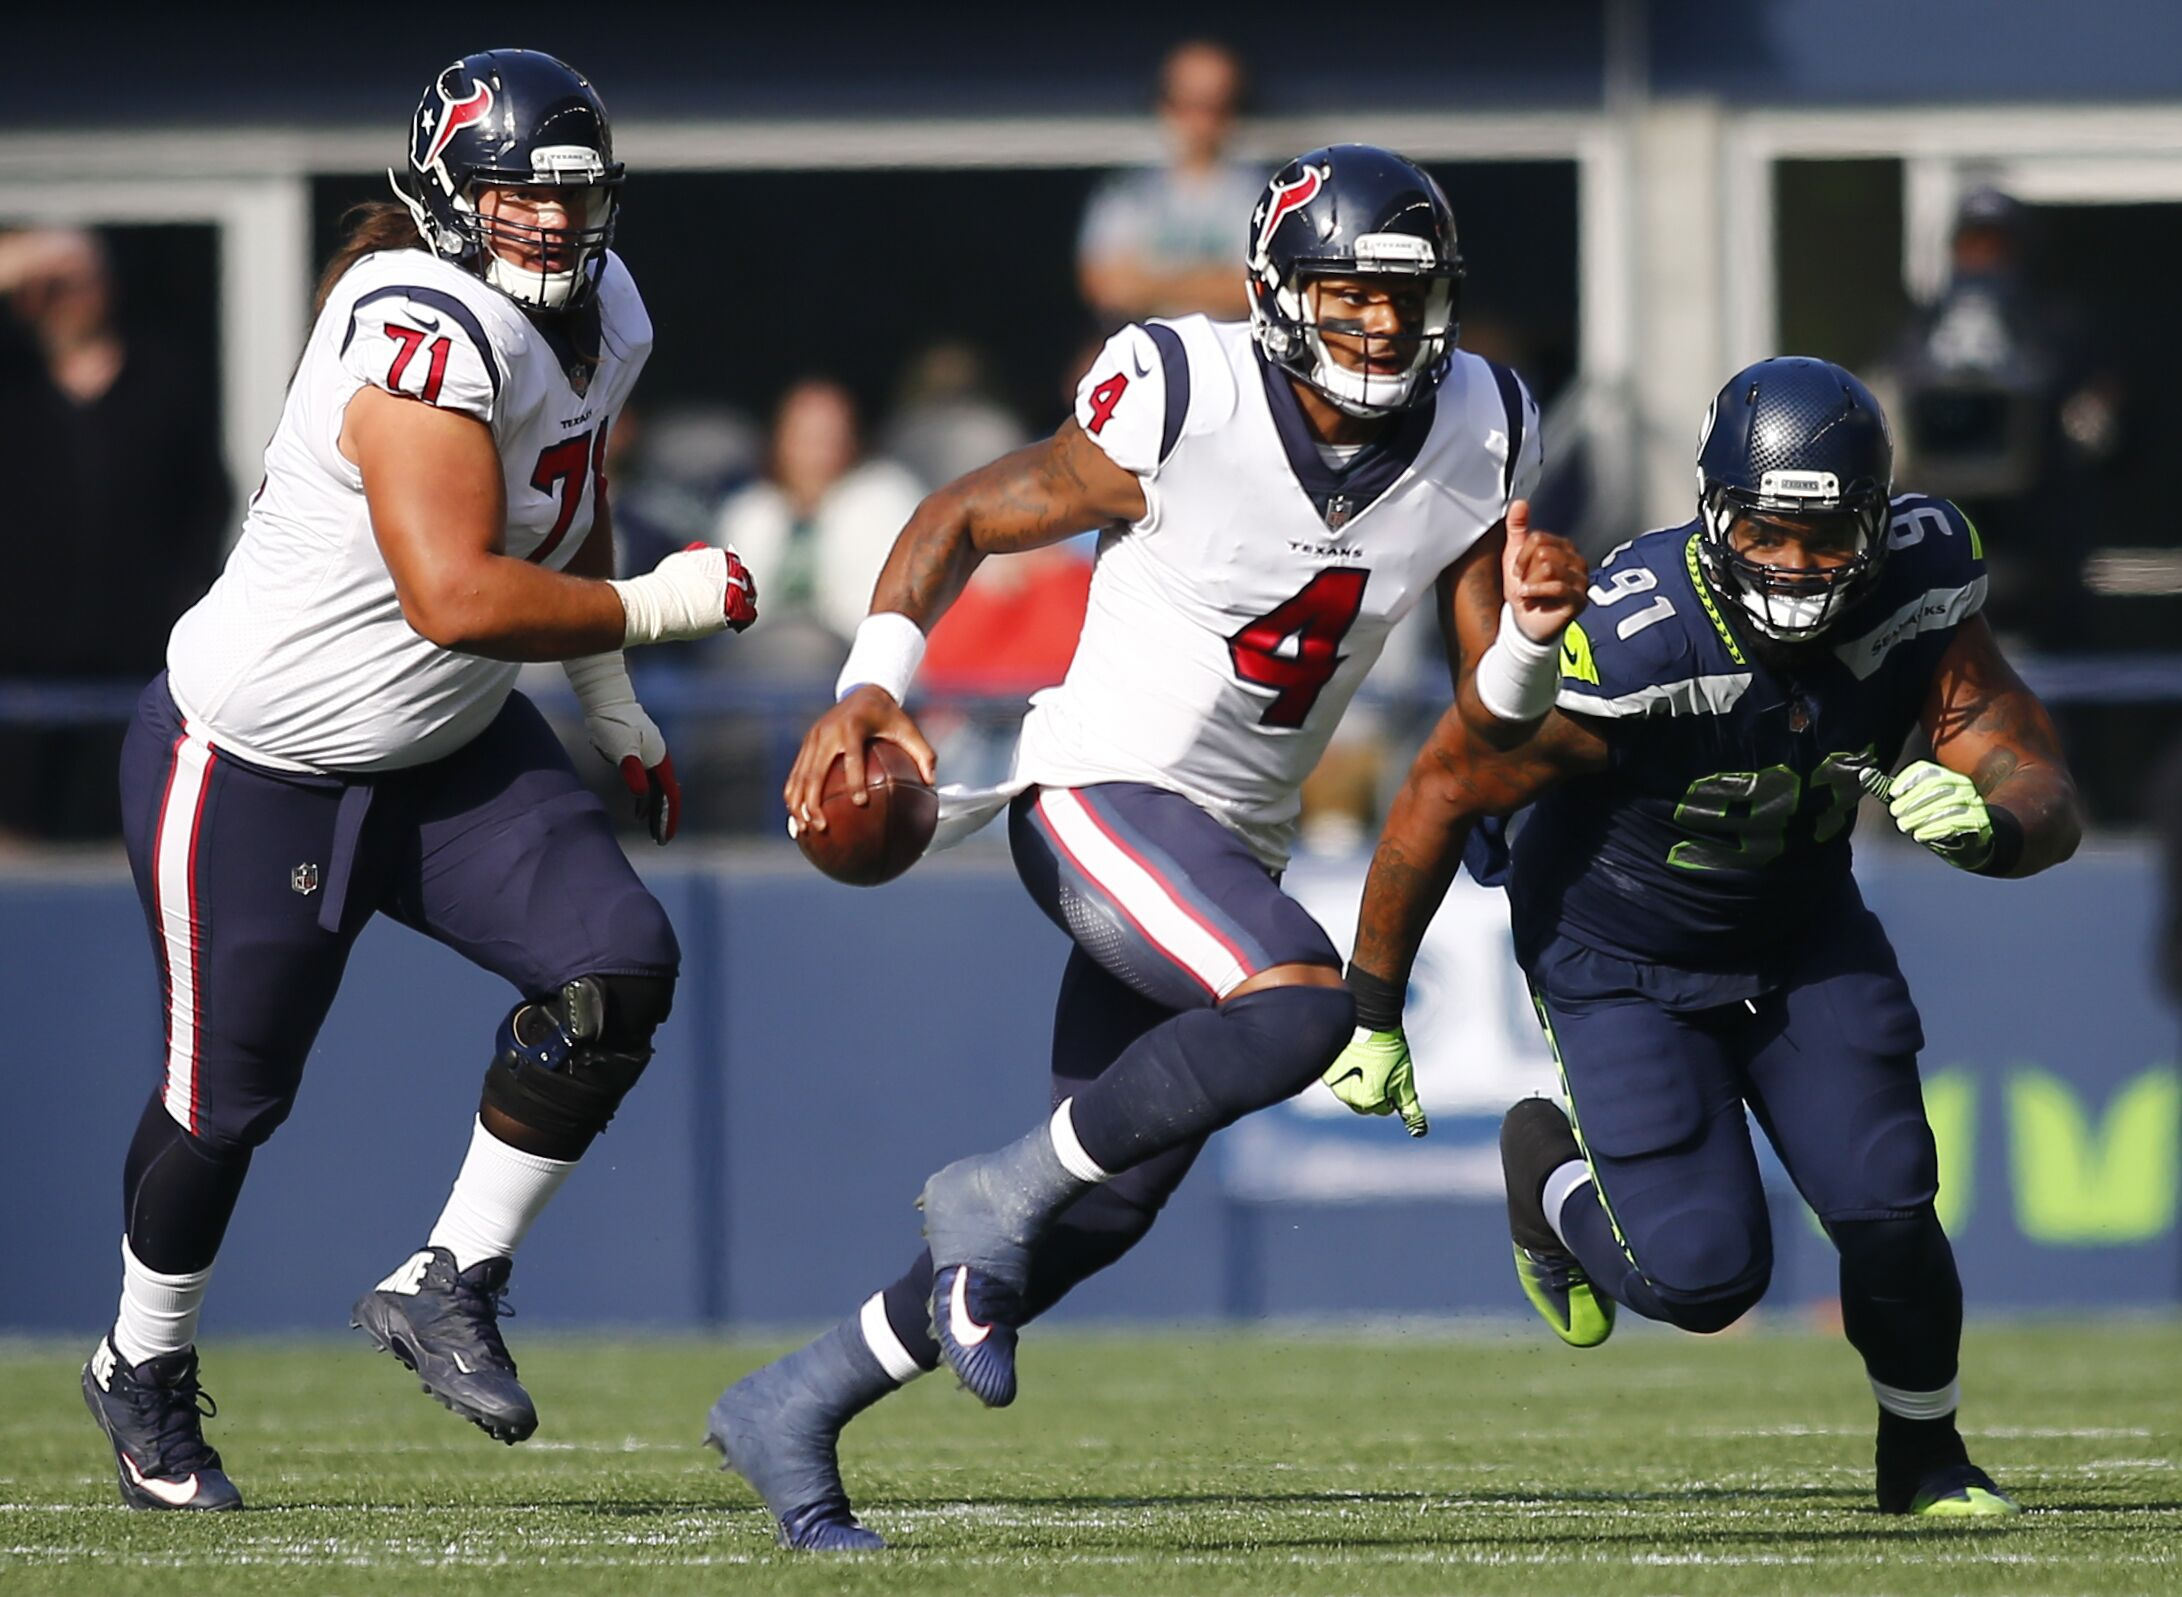 867923694-houston-texans-v-seattle-seahawks.jpg